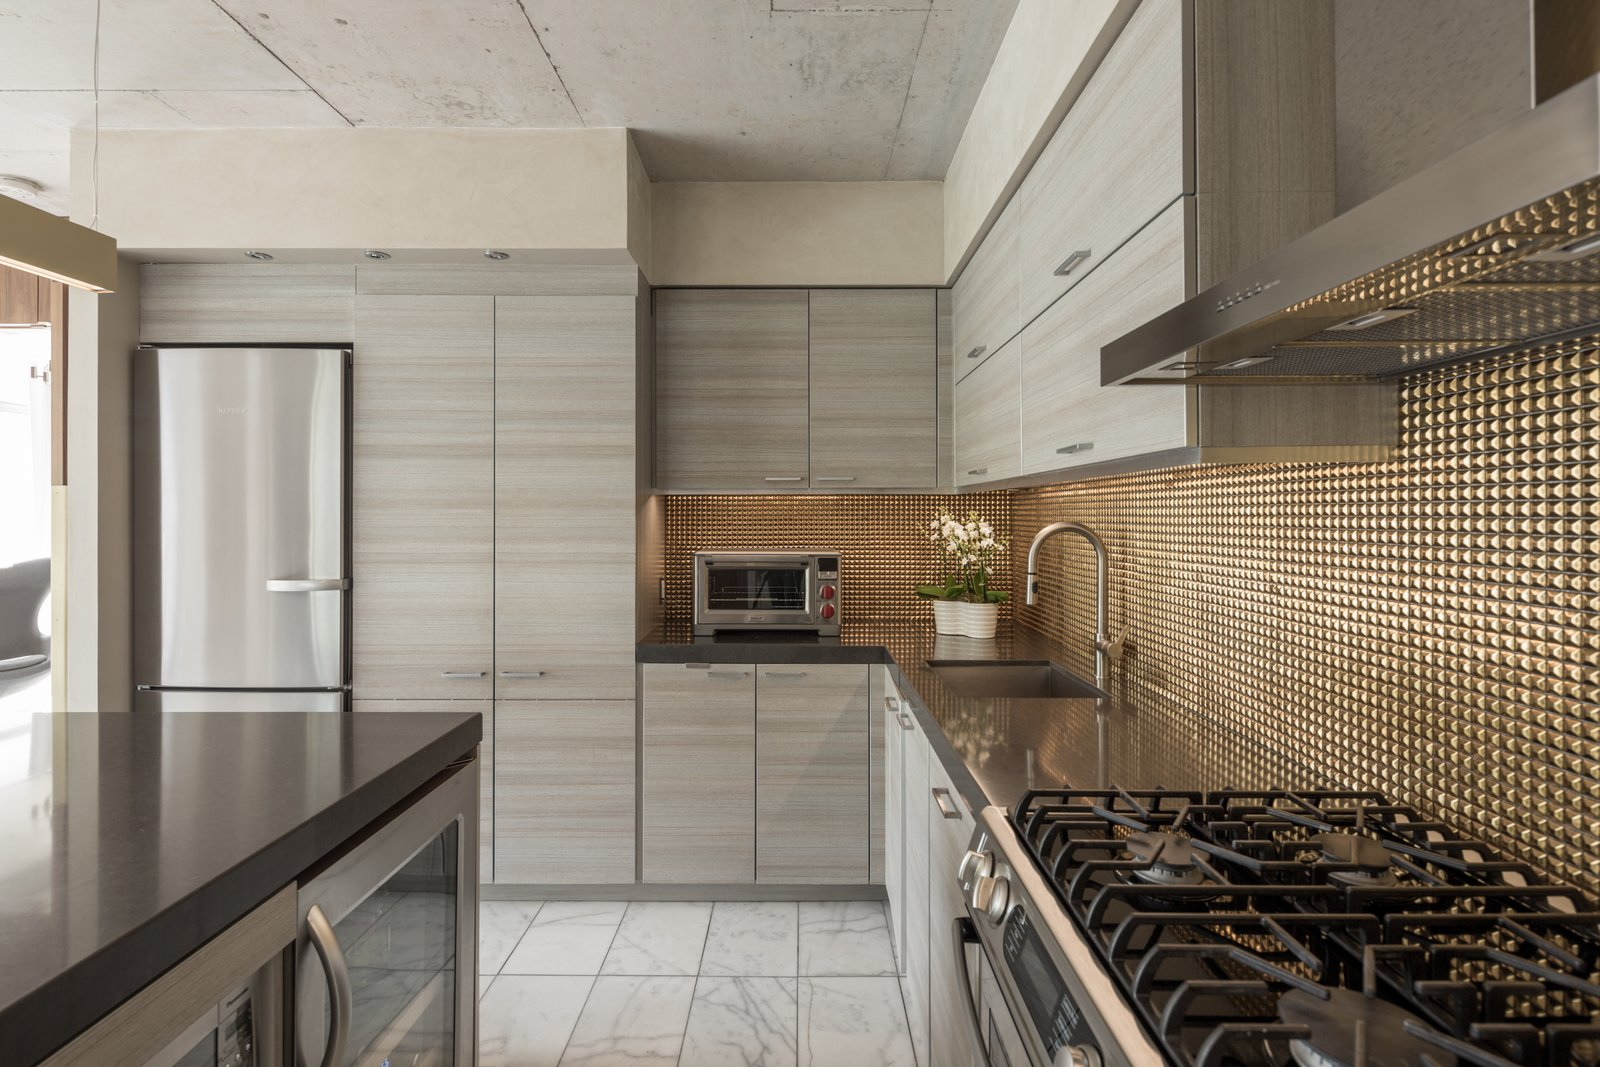 A new metallic, profiled backslash was added.